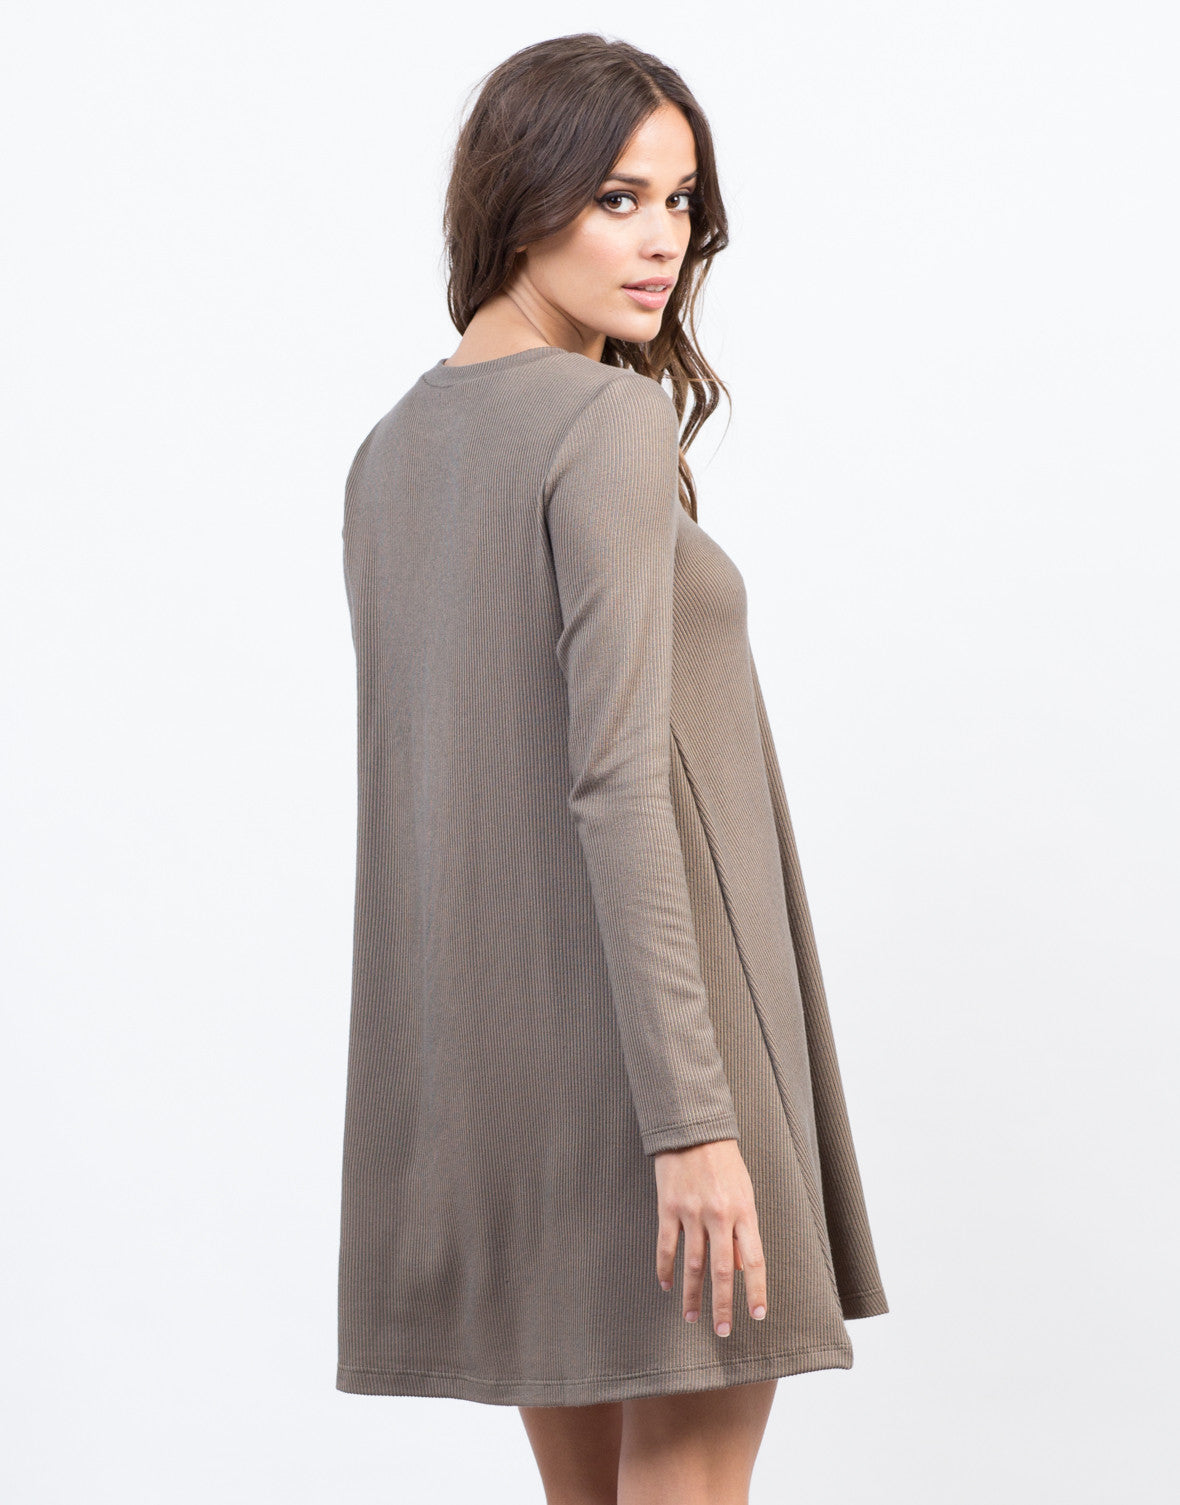 Back View of Ribbed L/S Dress